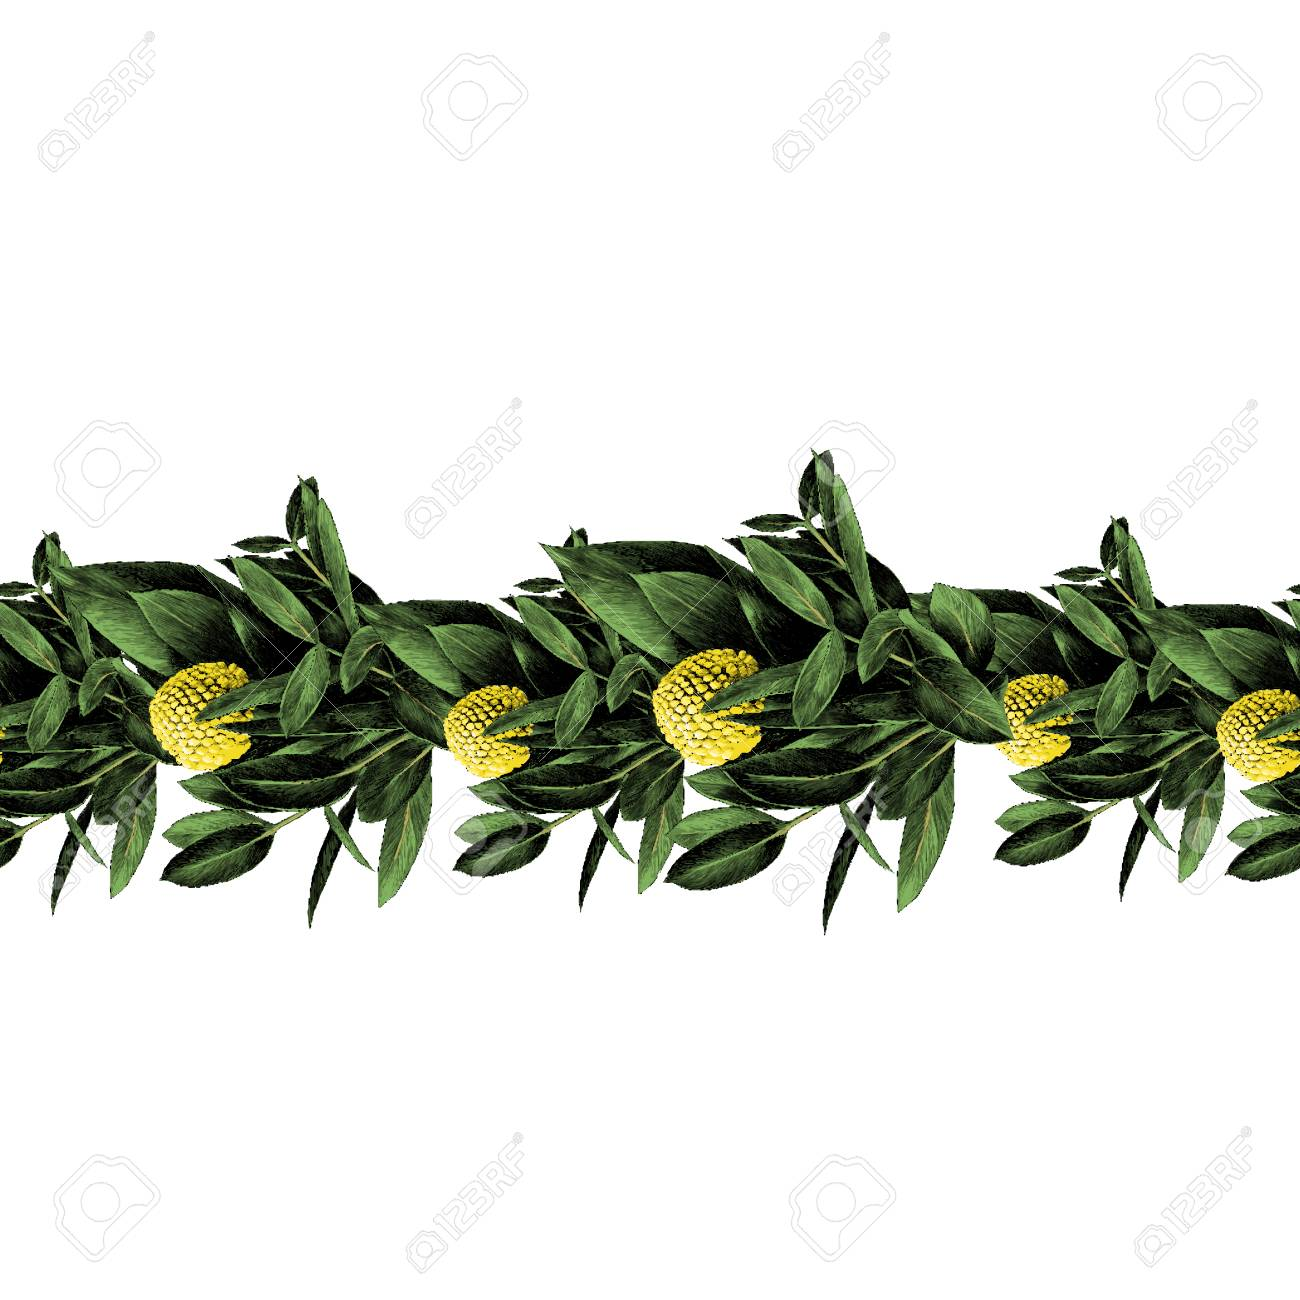 Strip Of Branches With Green Leaves And Round Yellow Flower